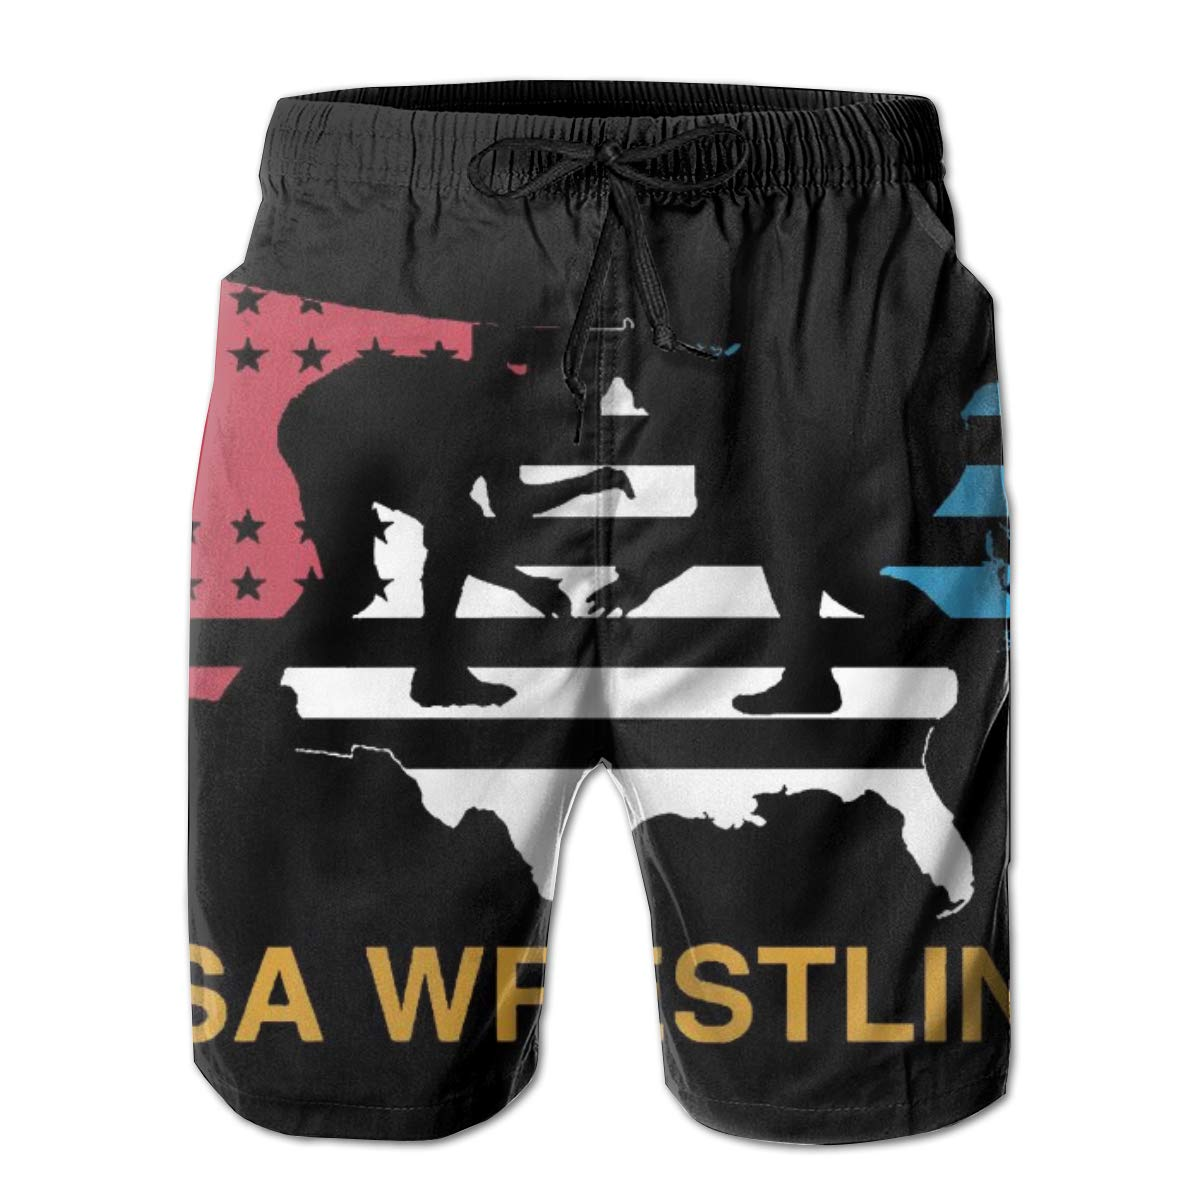 Comfortable Beach Shorts with Pockets Yt92Pl@00 Mens 100/% Polyester USA Flag Wrestling Beachwear